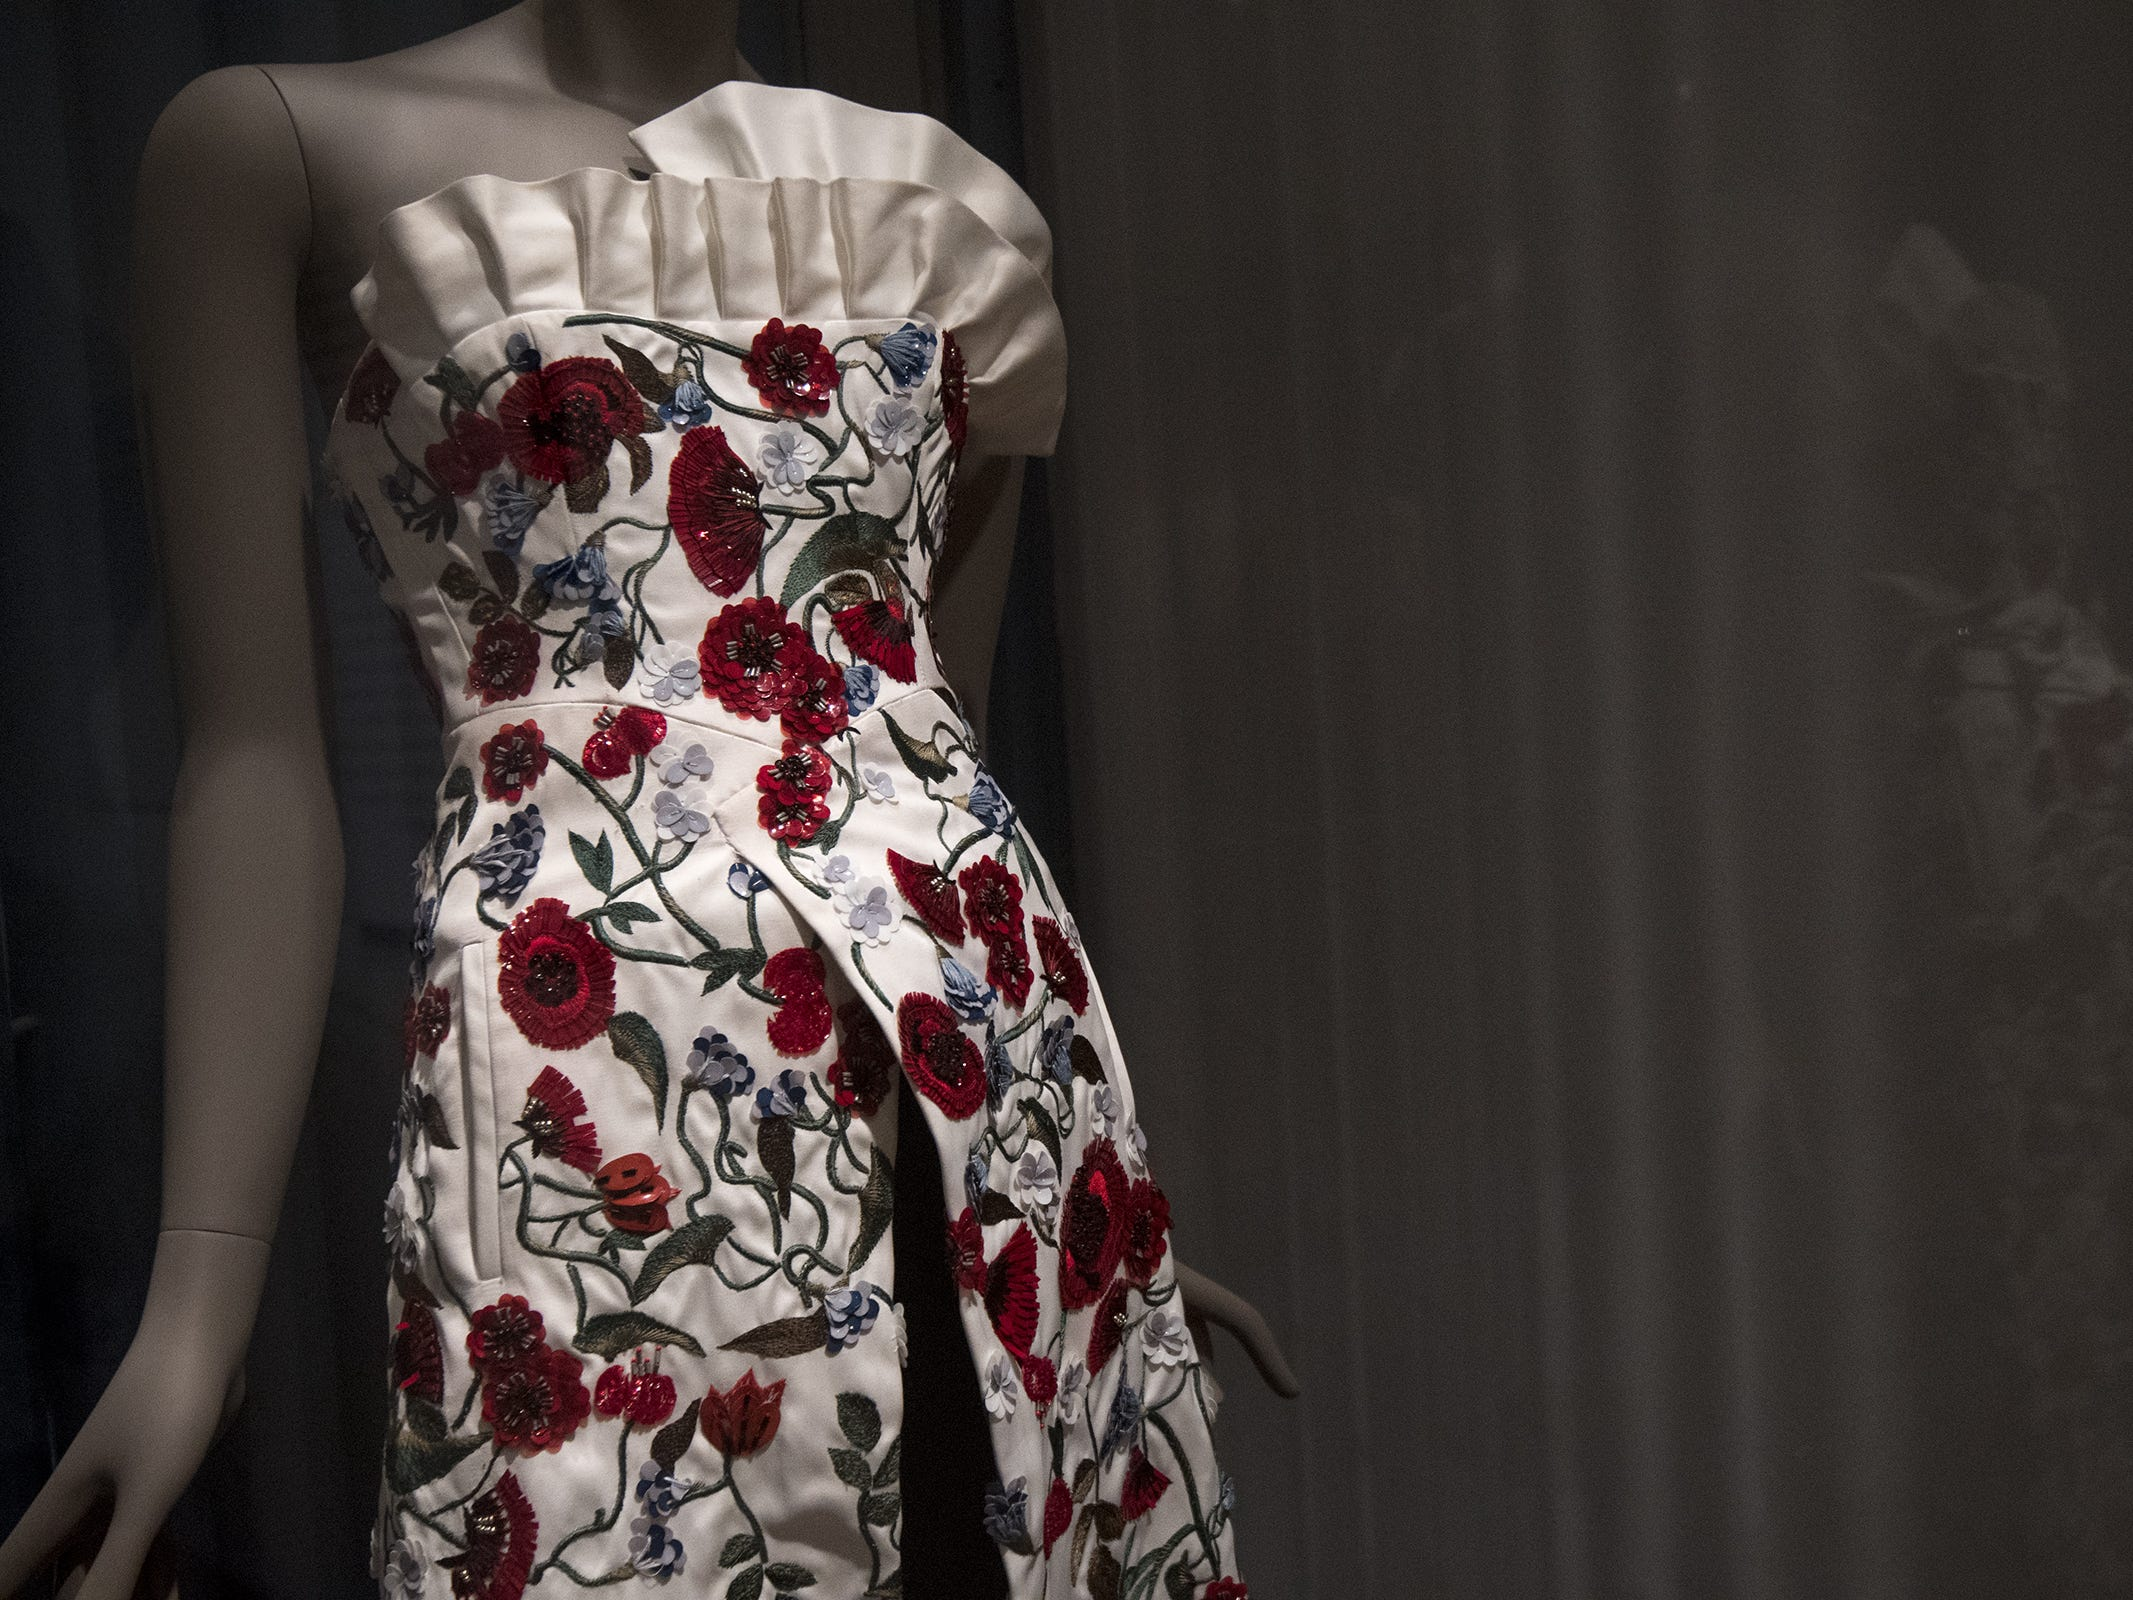 This dress by designer Osman Yousefzada and worn by actress Emma Watson, is a part of the new Fabrics of India exhibit at the Cincinnati Art Museum.